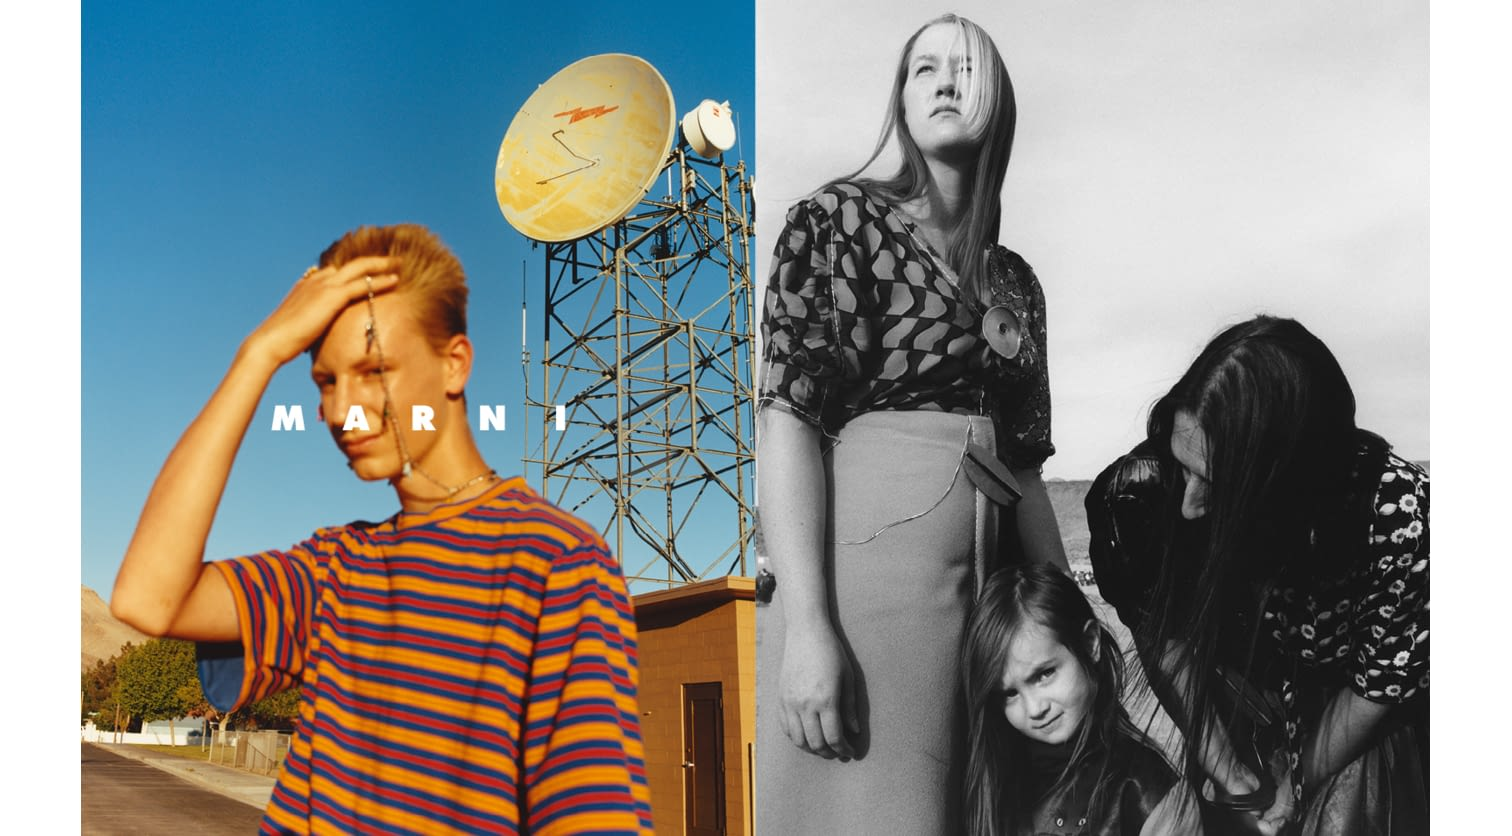 05-MARNI FW18 ADVERTISING CAMPAIGN.jpg